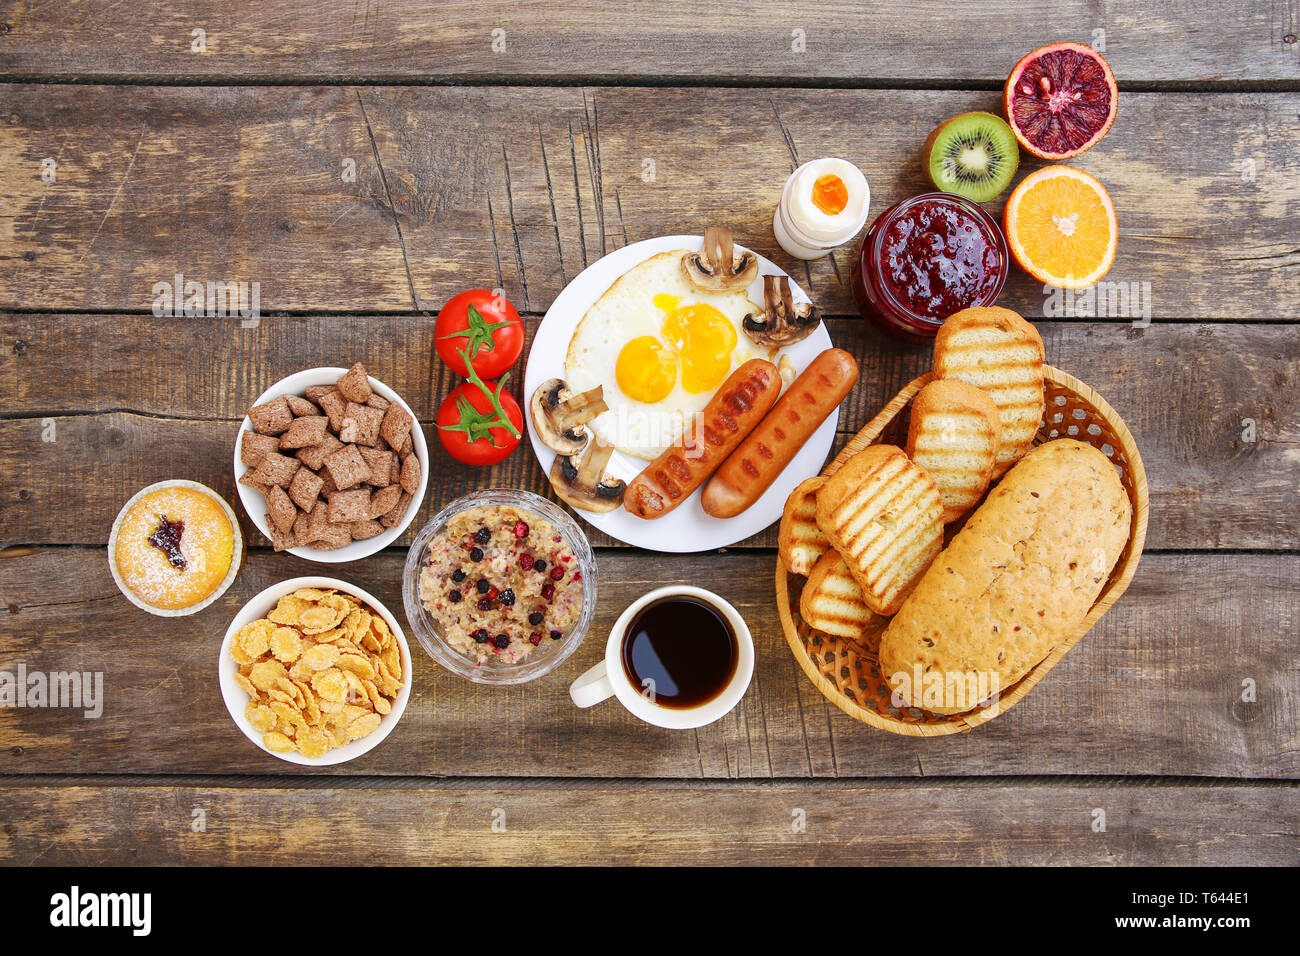 Healthy food on old wooden background. Breakfast. Top view. Flat lay. - Stock Image